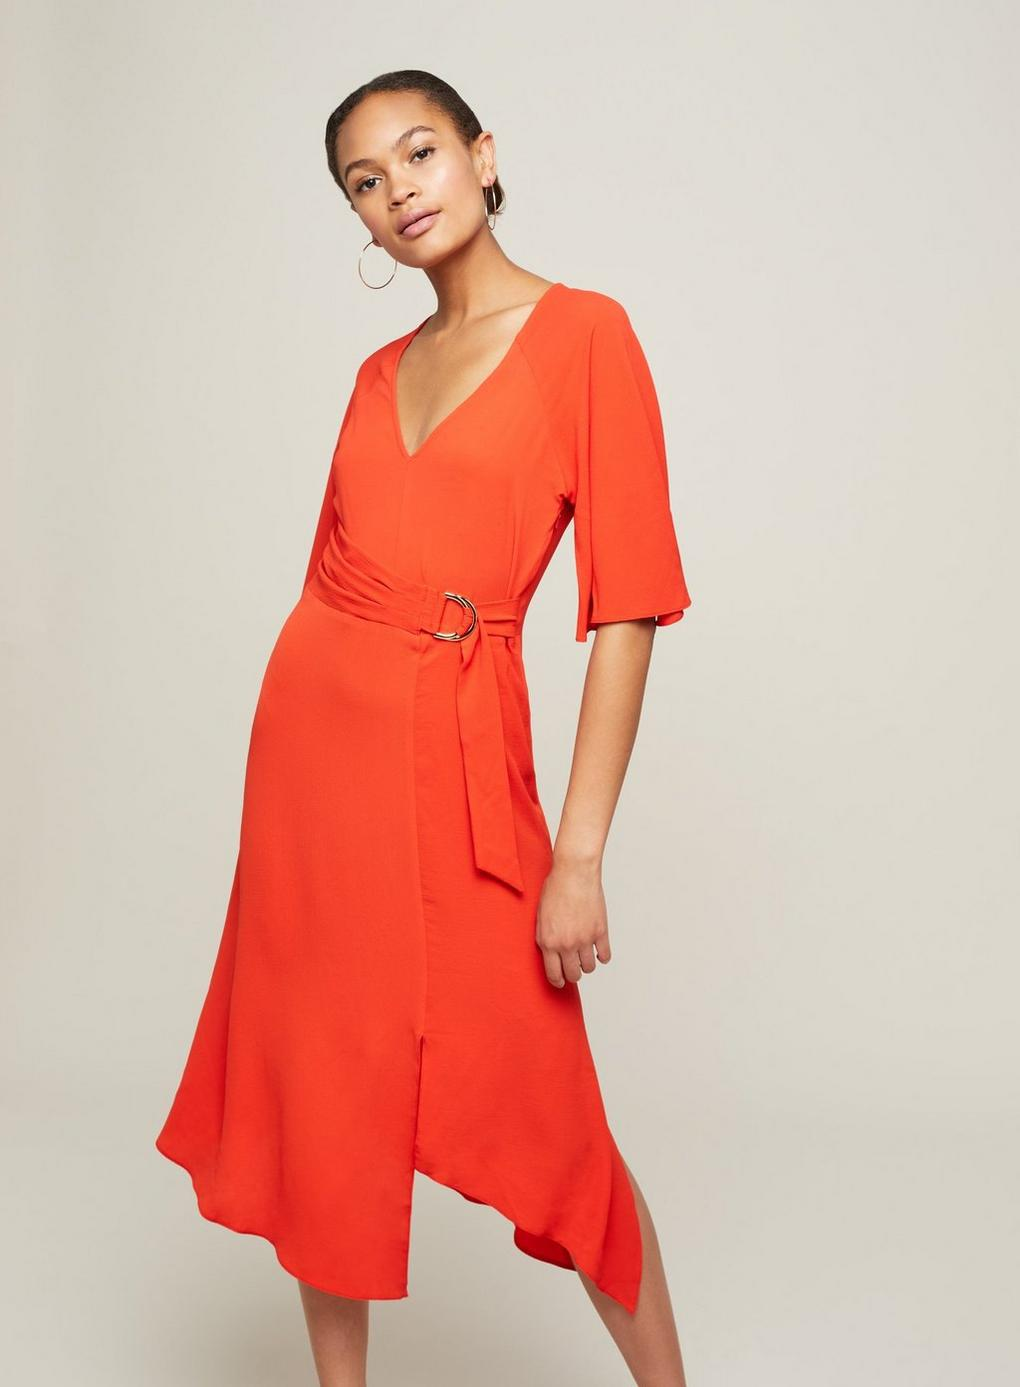 daf8f53059 Miss Selfridge Red D-ring Midi Dress in Red - Lyst